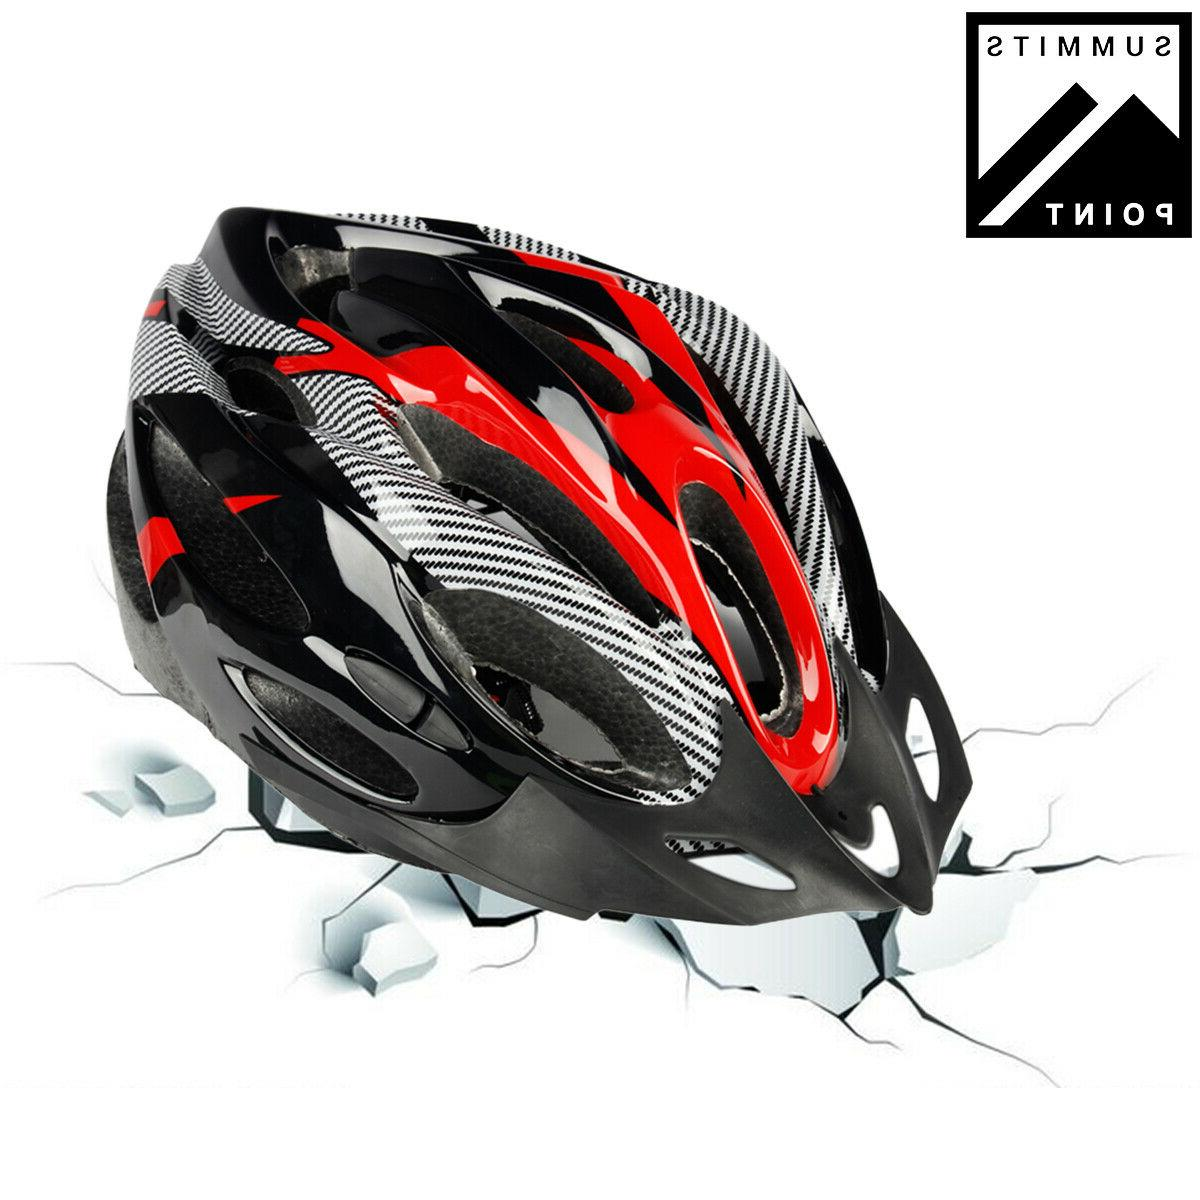 Bicycle Helmet Cycling MTB Mountain Bike Sports Safety